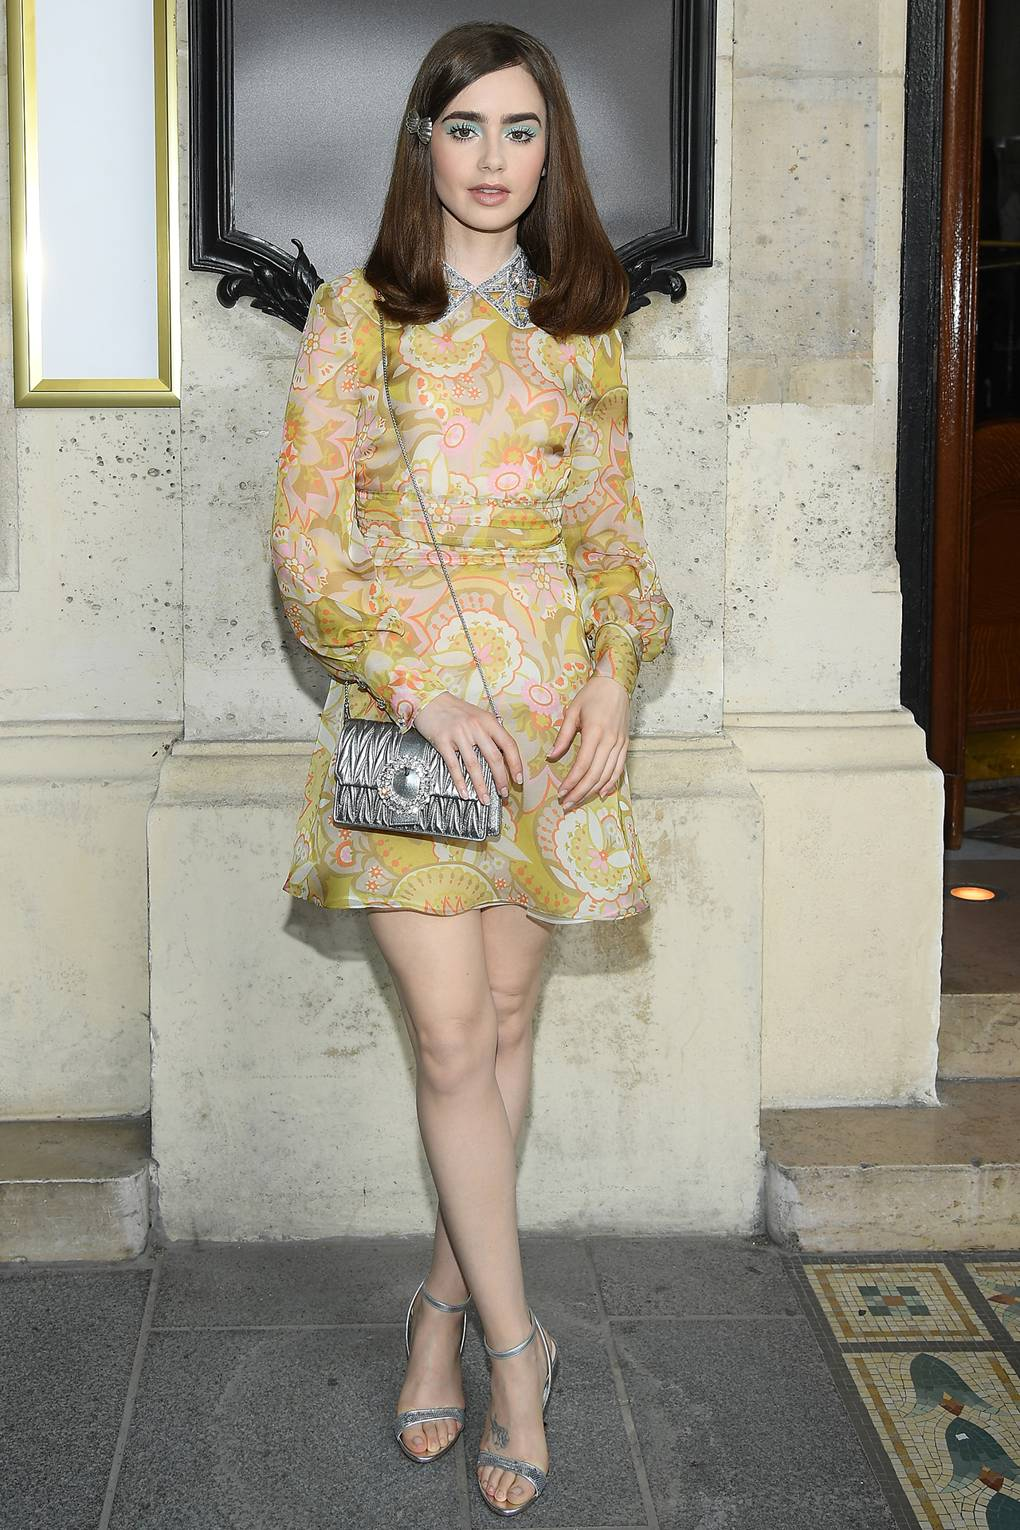 Lily Collins en el Miu Miu Fashion Show. Fotografía: Getty Images